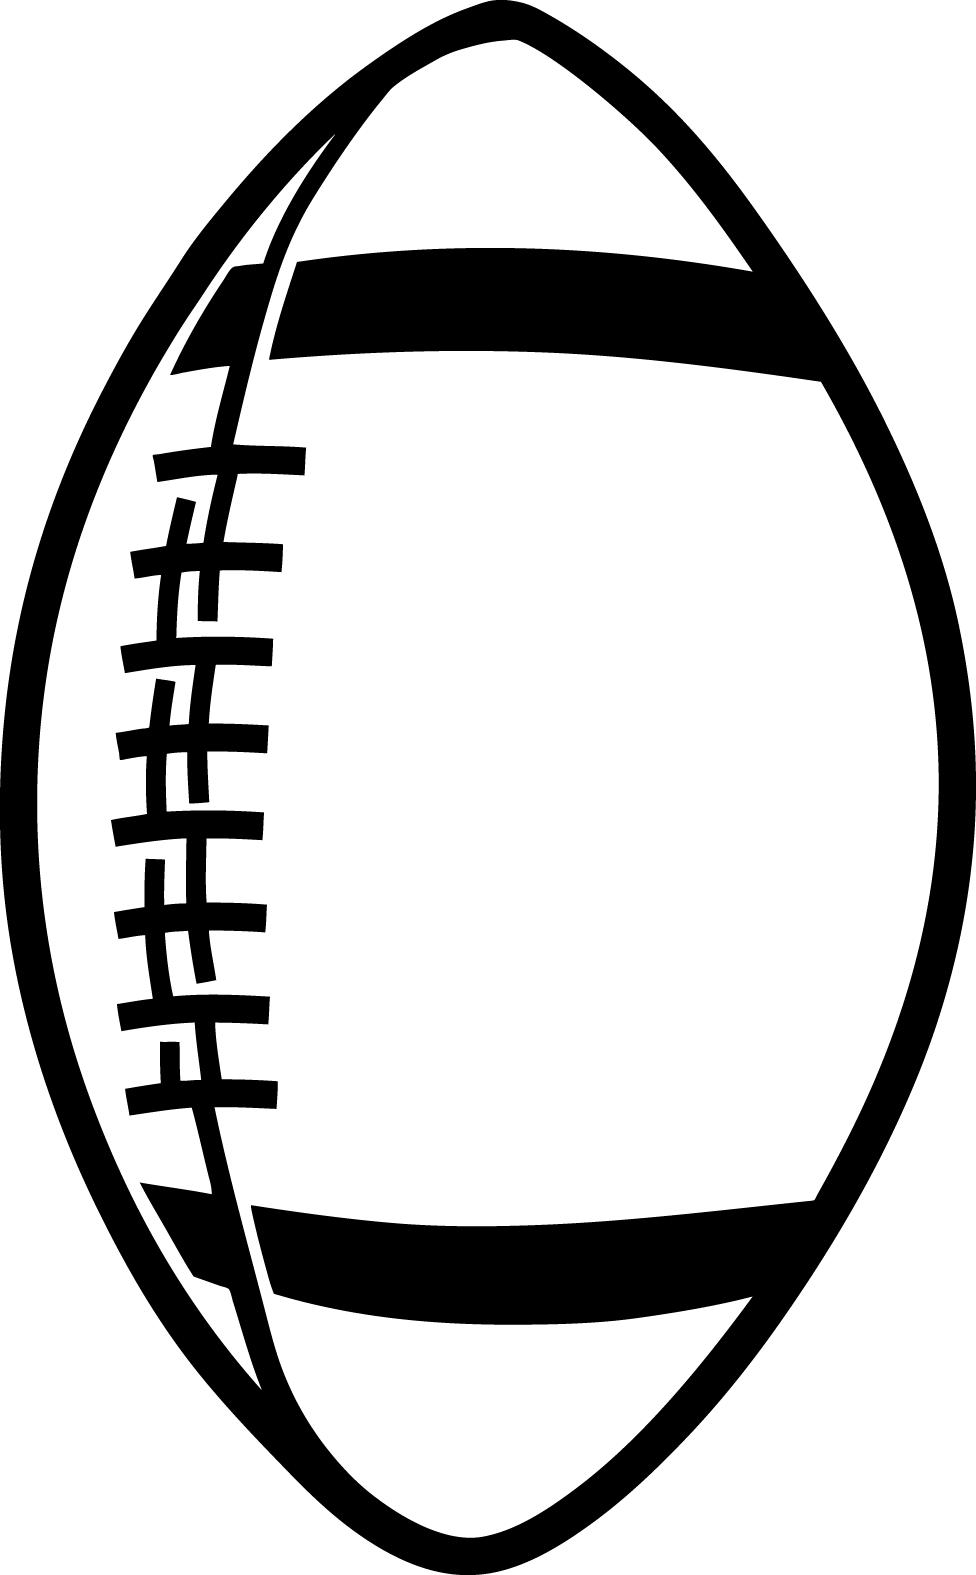 Football Outline Graphic